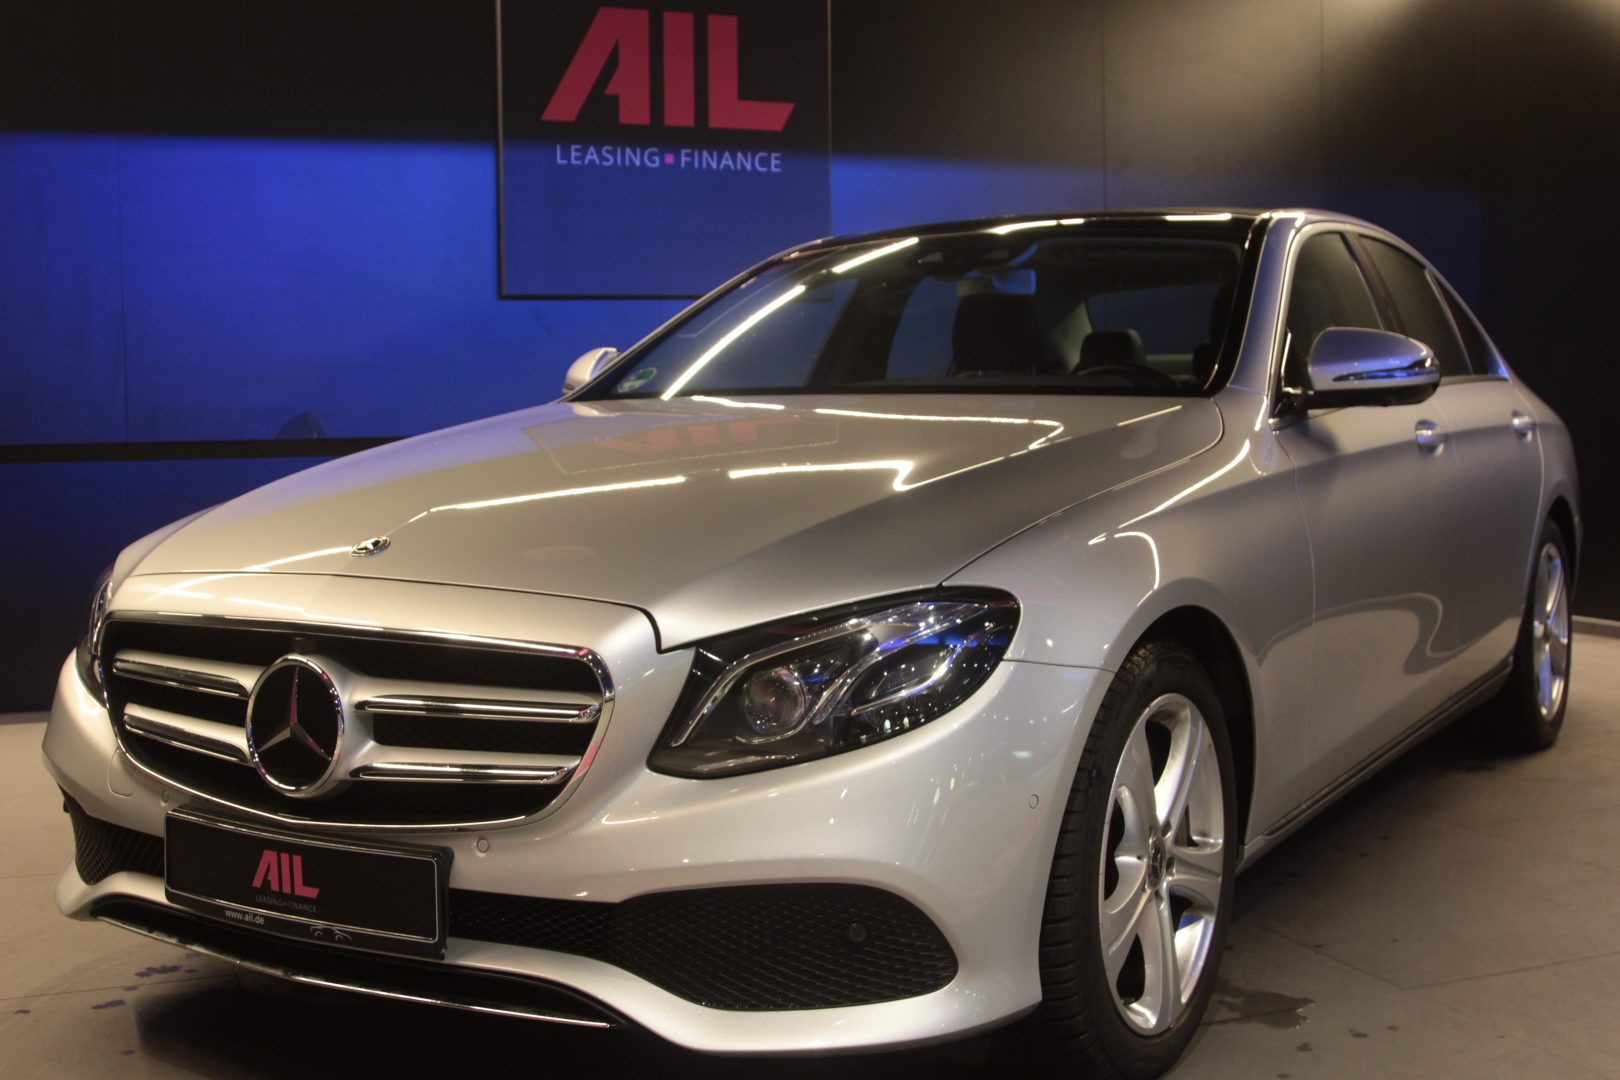 AIL Mercedes-Benz E 350 d 4Matic 13